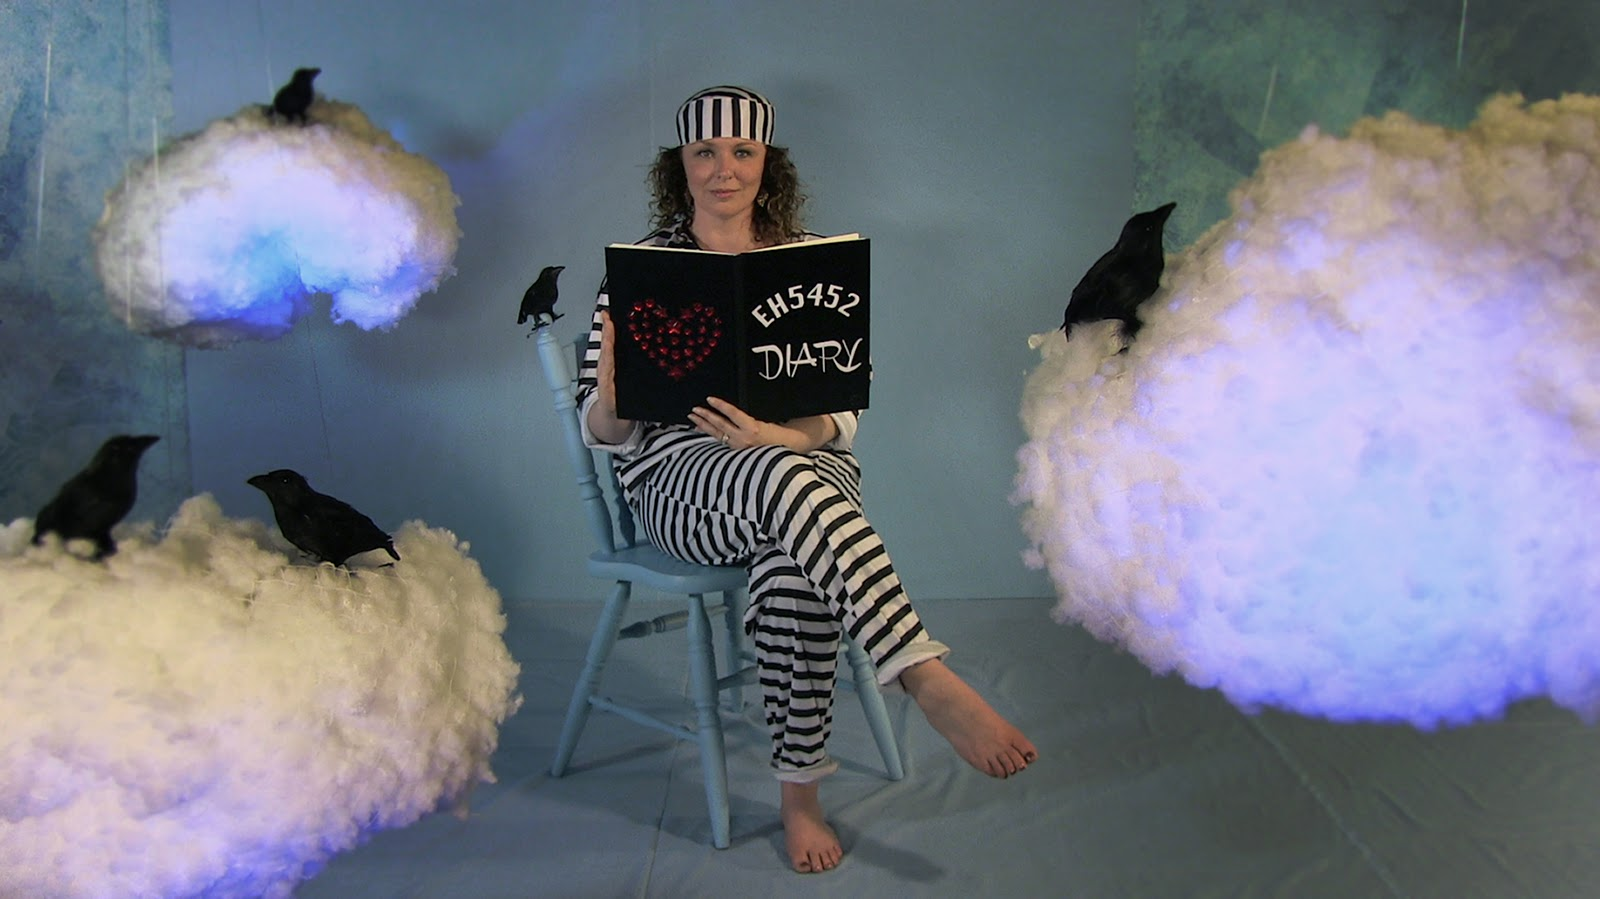 still shot from video artwork, the artist dressed in striped prison garb sits among clouds and black birds reading a diary.